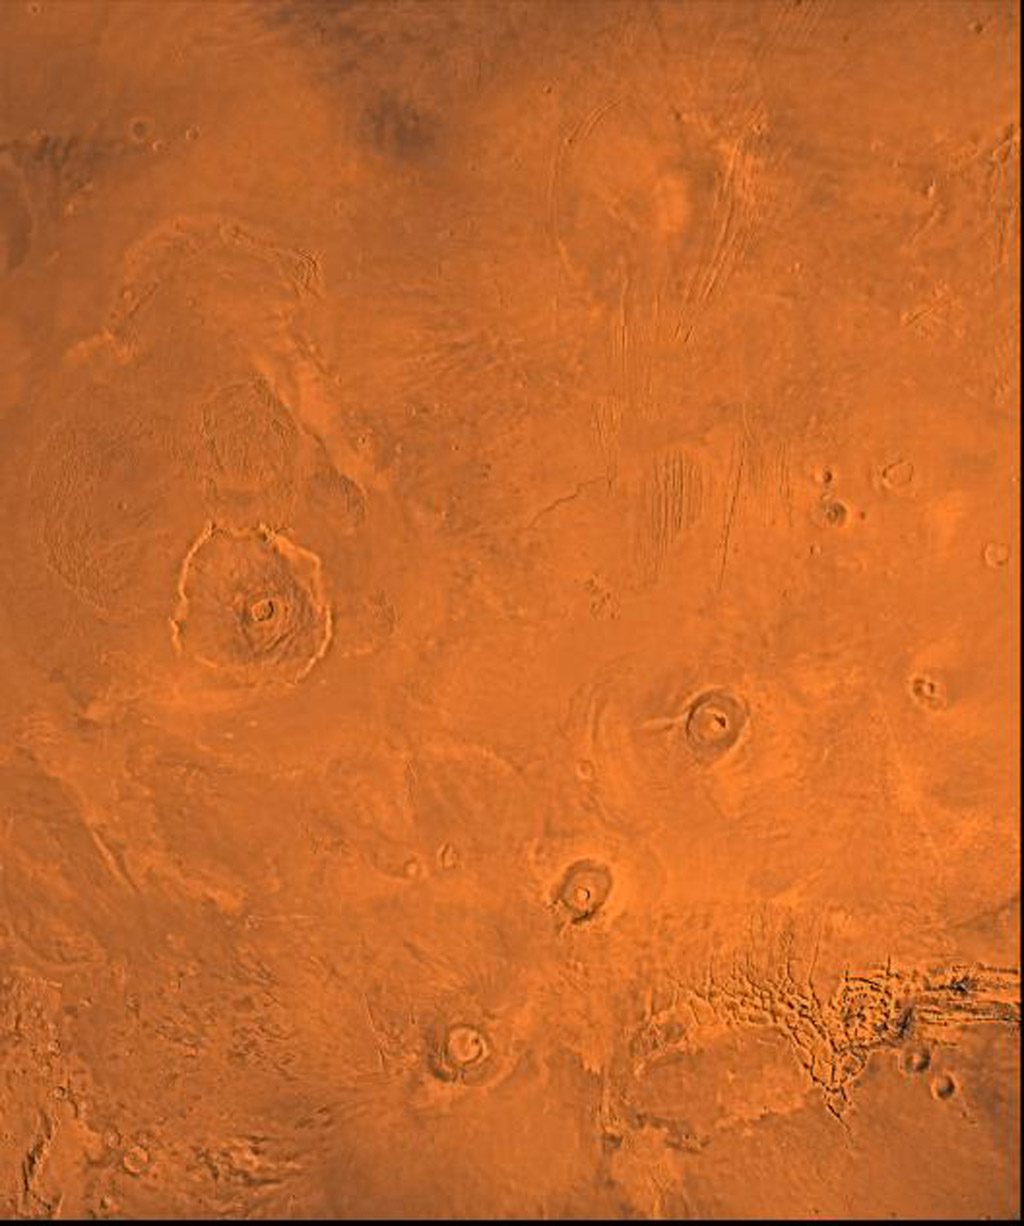 The Tharsis region of Mars; north toward top. This scene shows the Tharsis bulge, a huge ridge covered by the 3 large aligned Tharsis Montes shield volcanoes (from lower l to r): Arsia, Pavonis, and Ascraeus Mons as seen by NASA's Viking spacecraft.